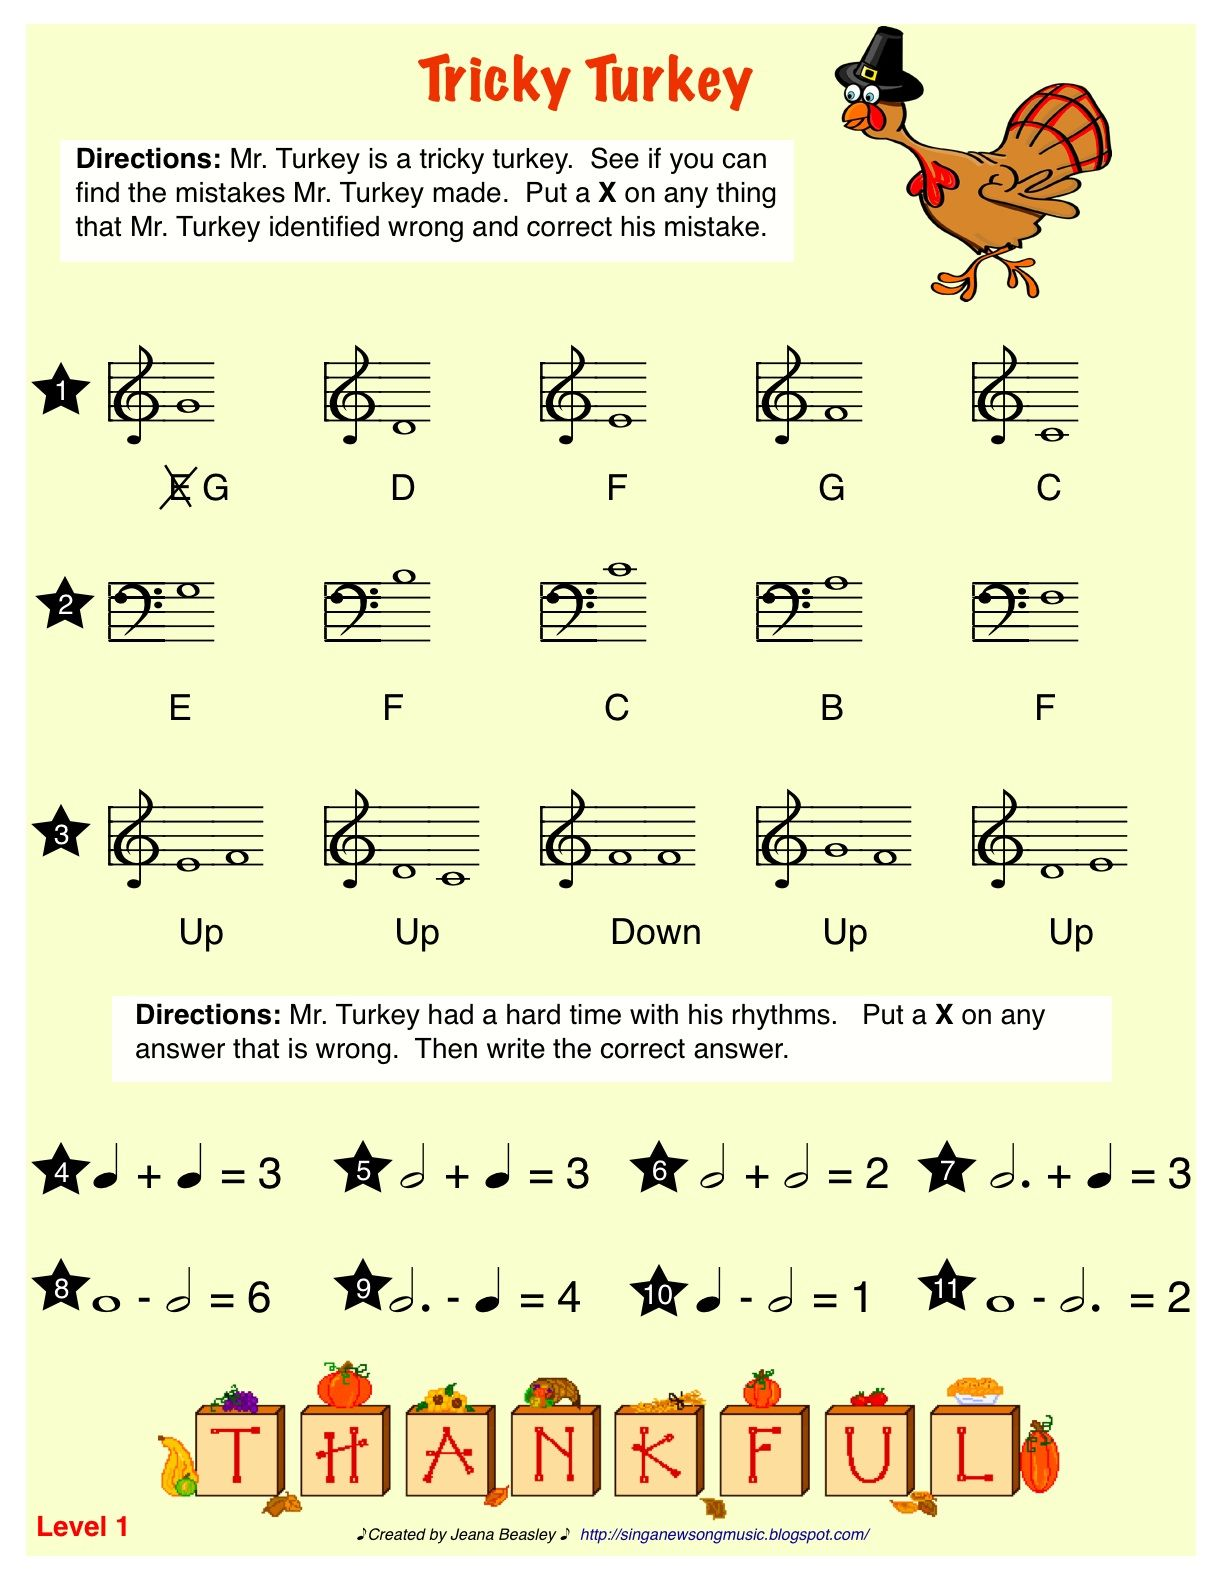 Awesome Blog With Tons Of Activities And Printables Sing